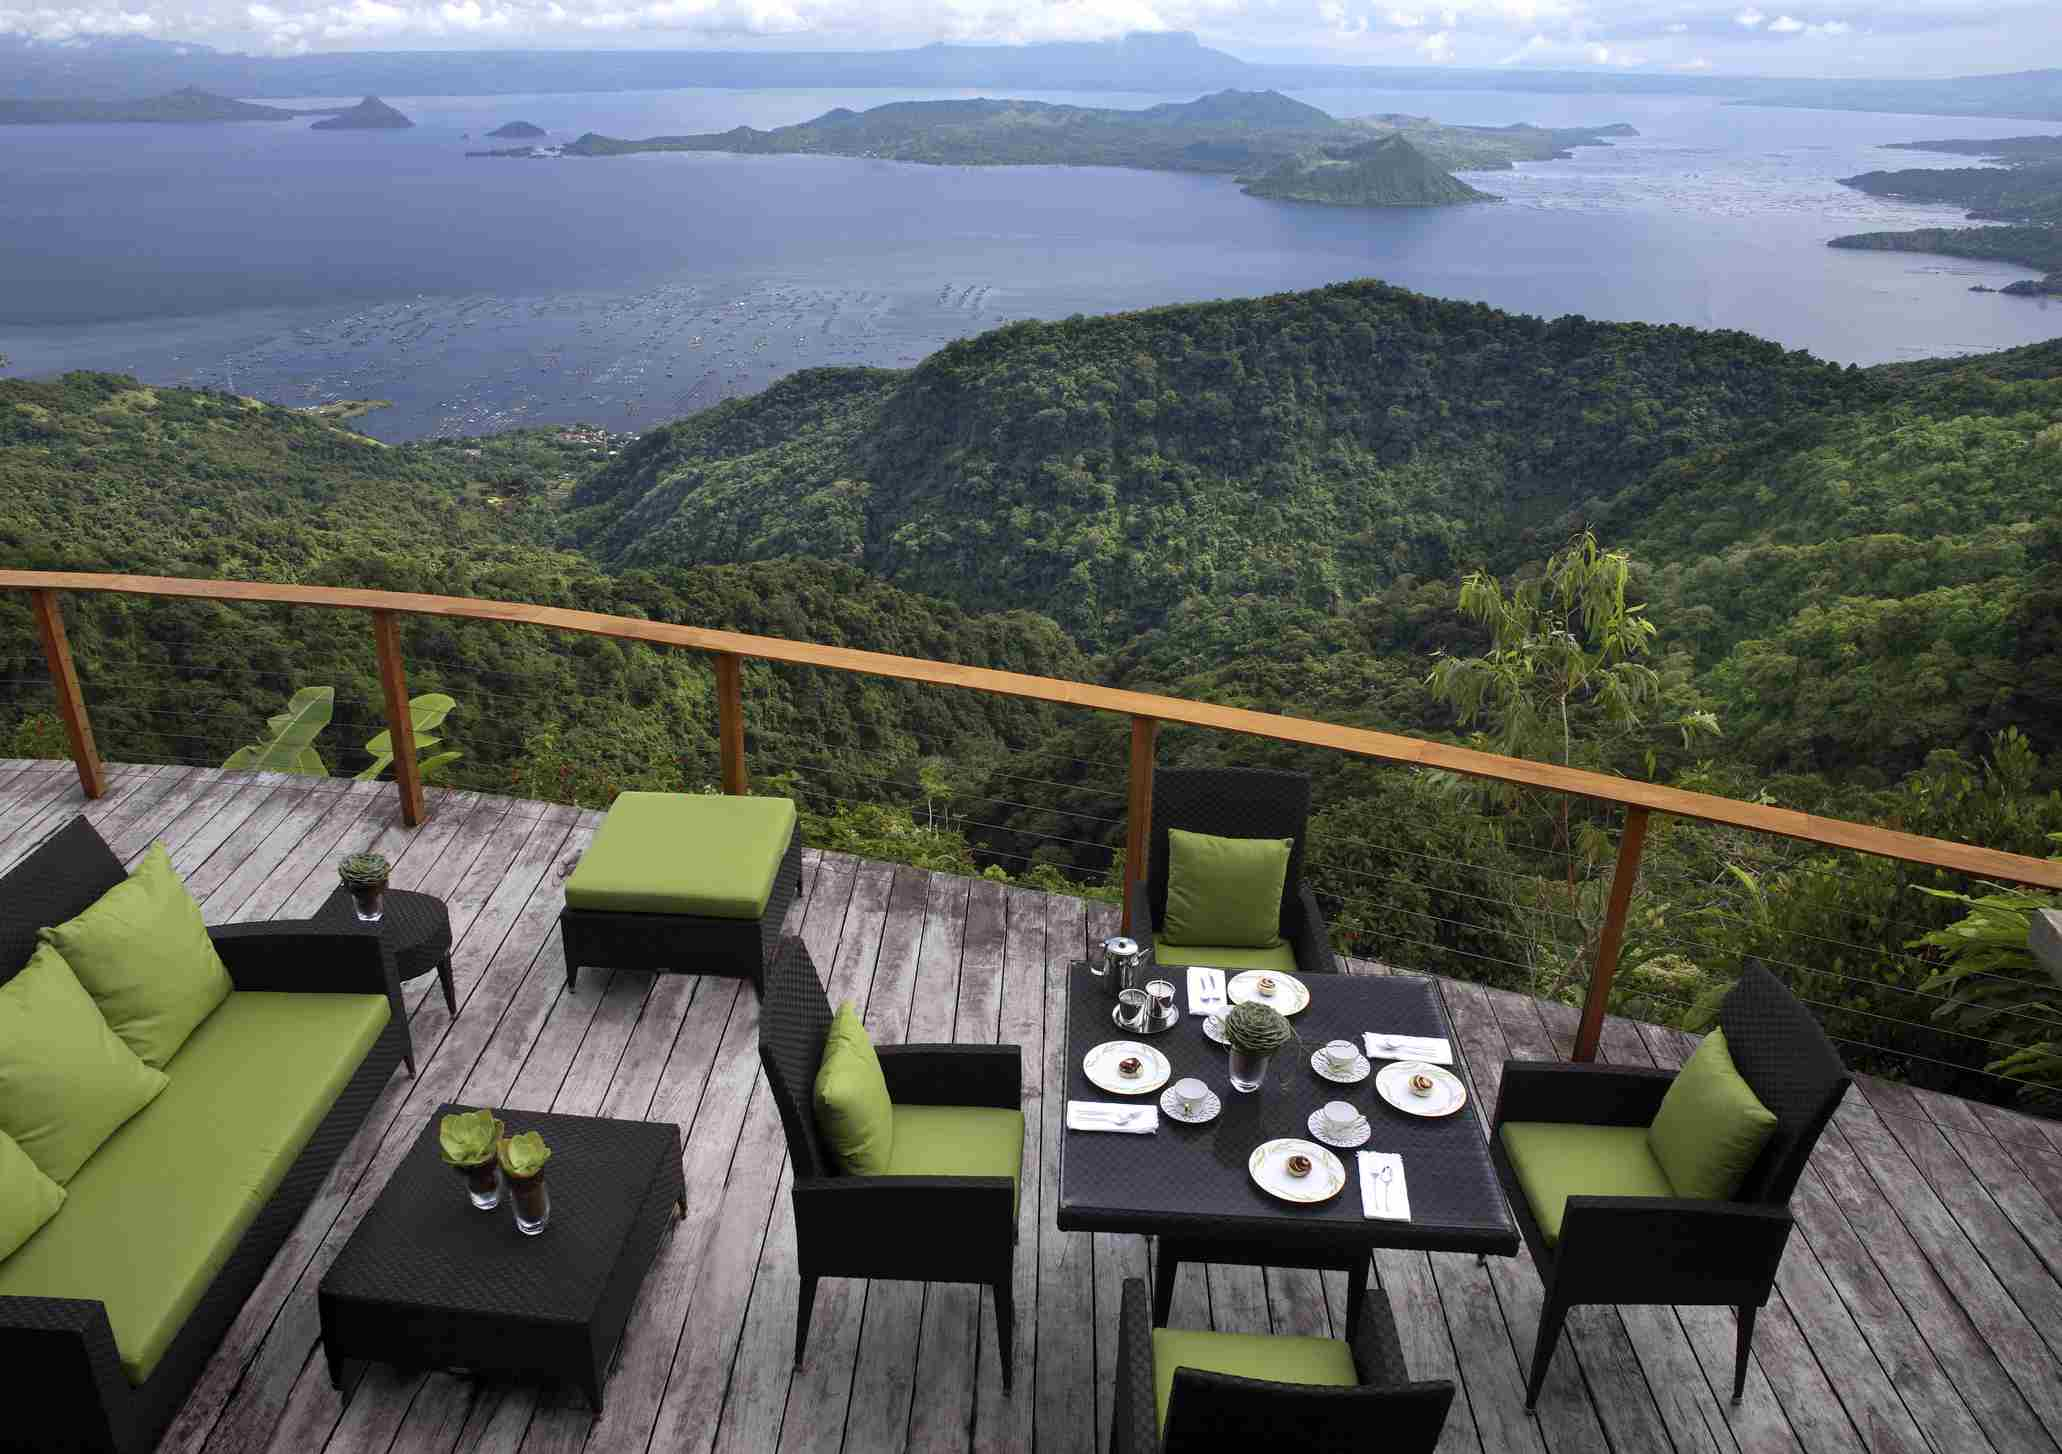 Viewdeck overlooking Taal Lake in Tagaytay, Philippines